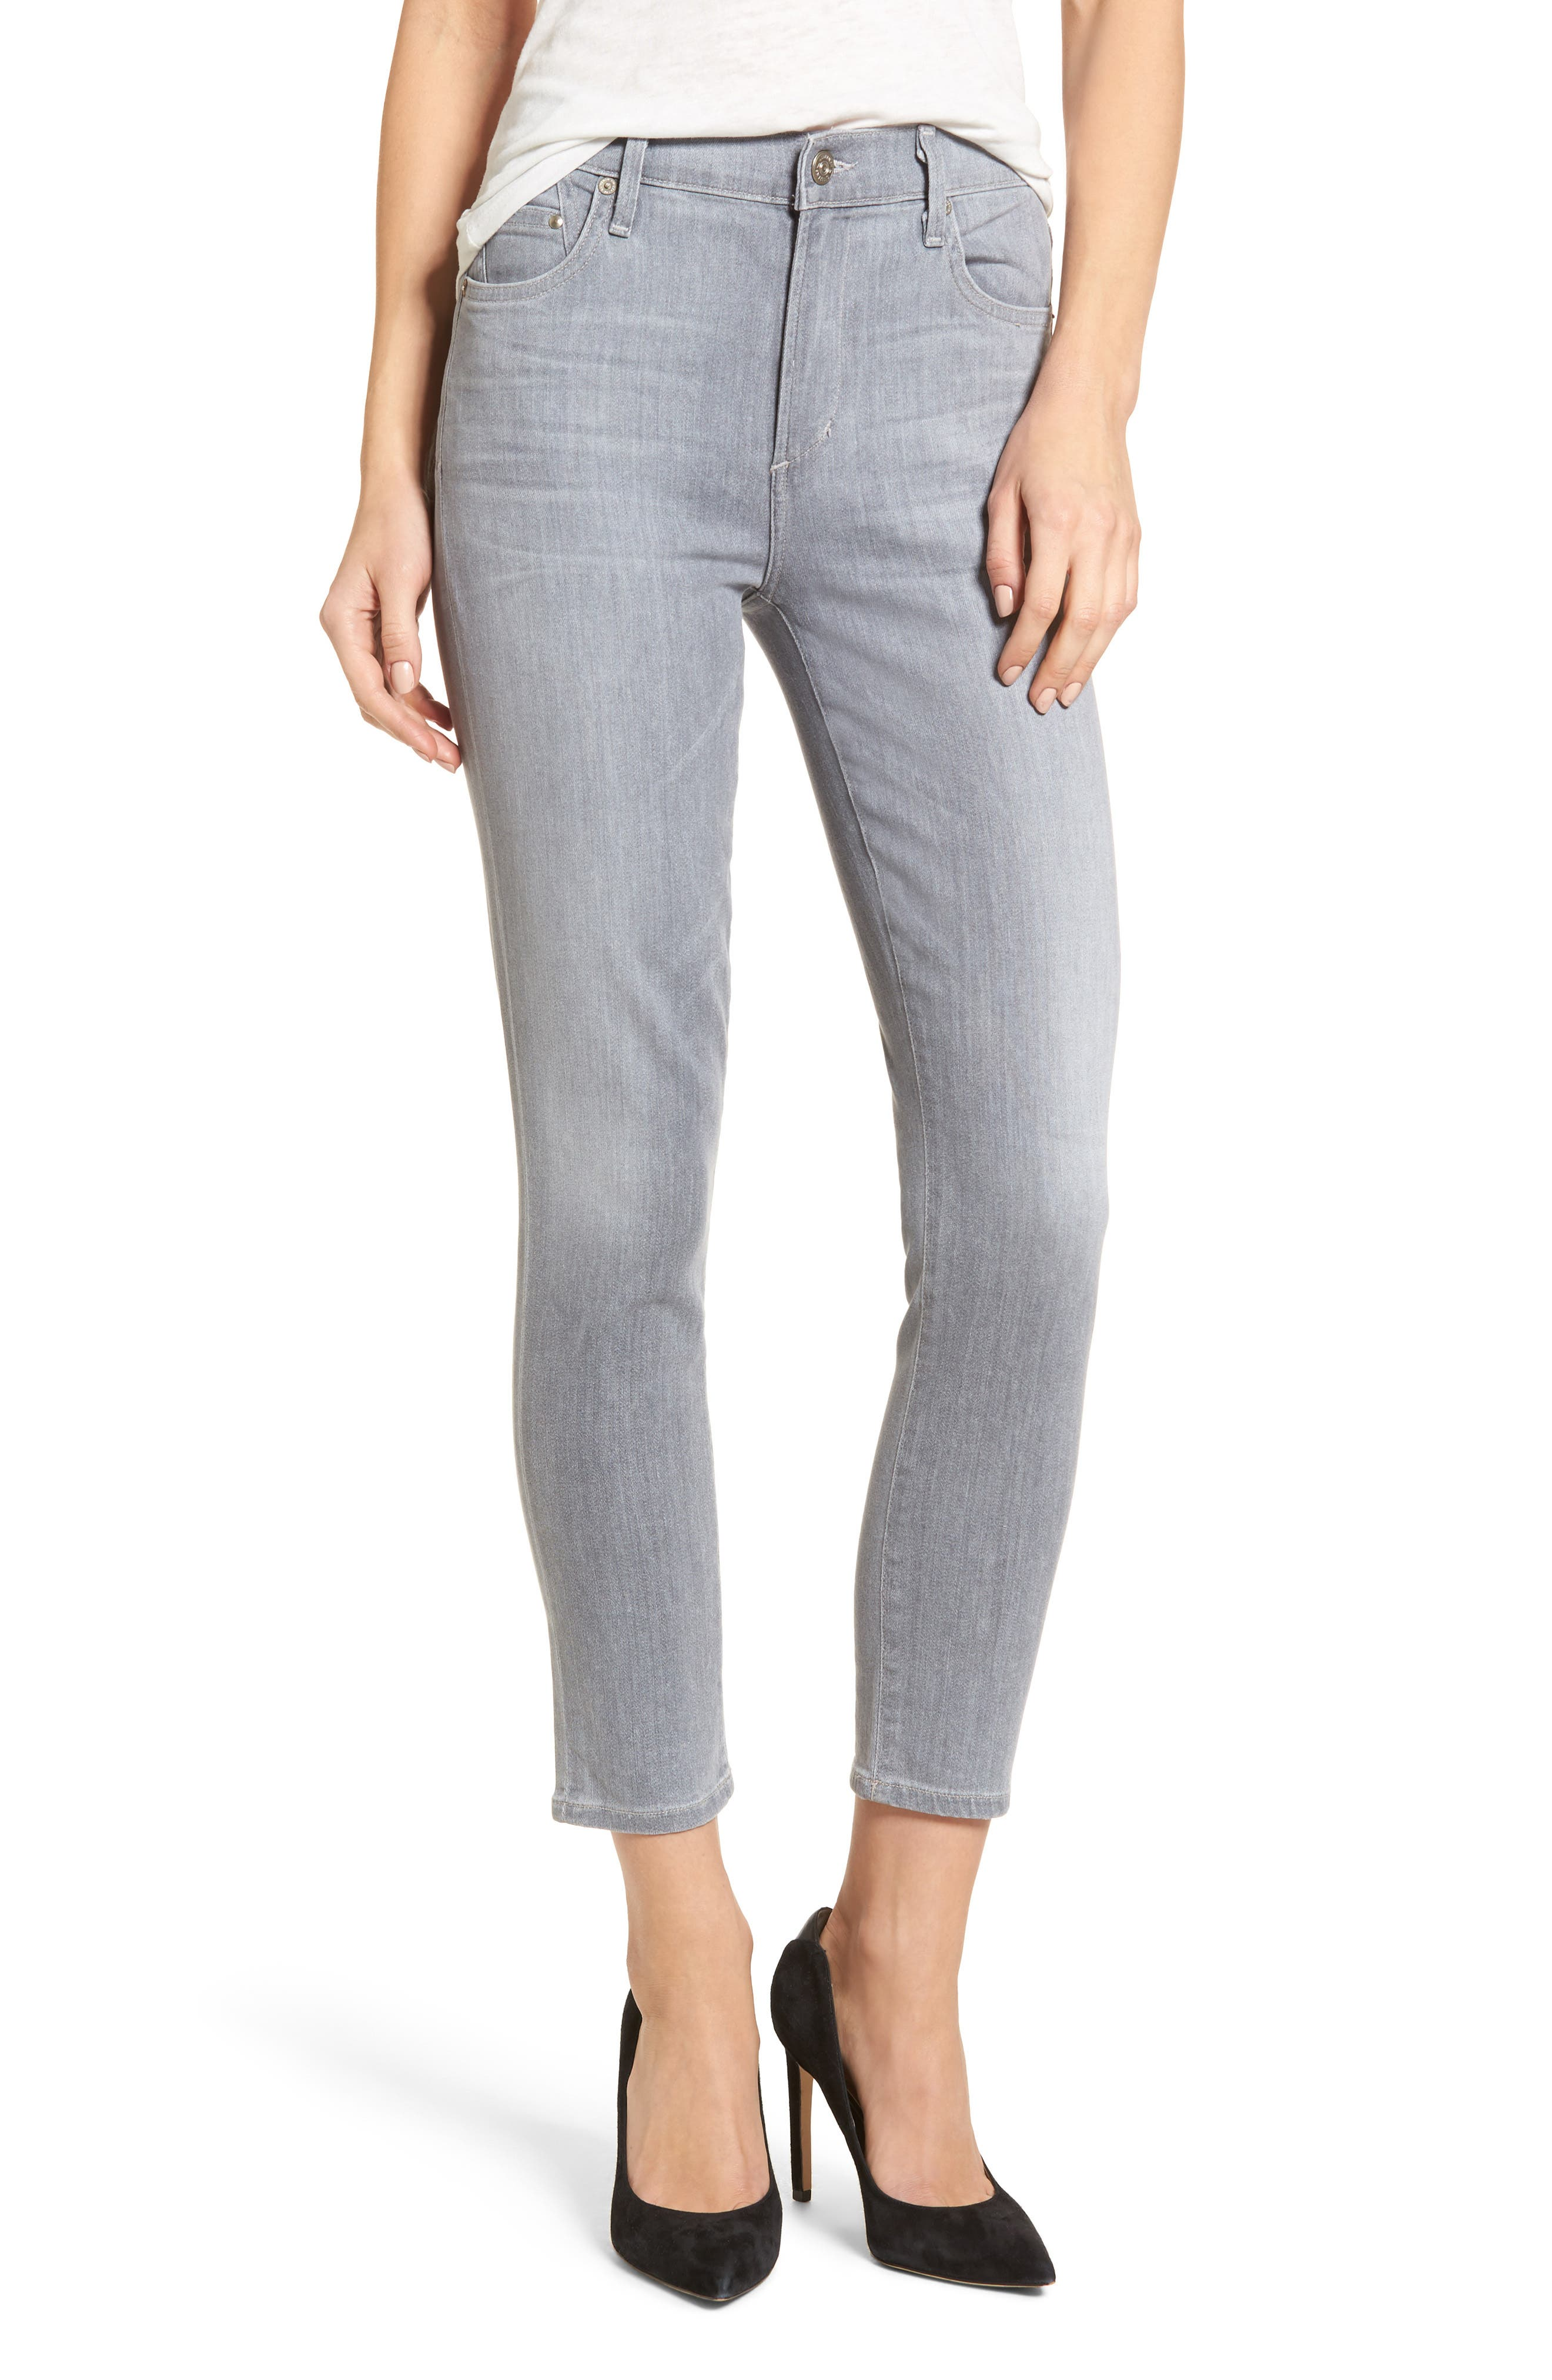 Rocket High Waist Crop Skinny Jeans,                             Main thumbnail 1, color,                             056